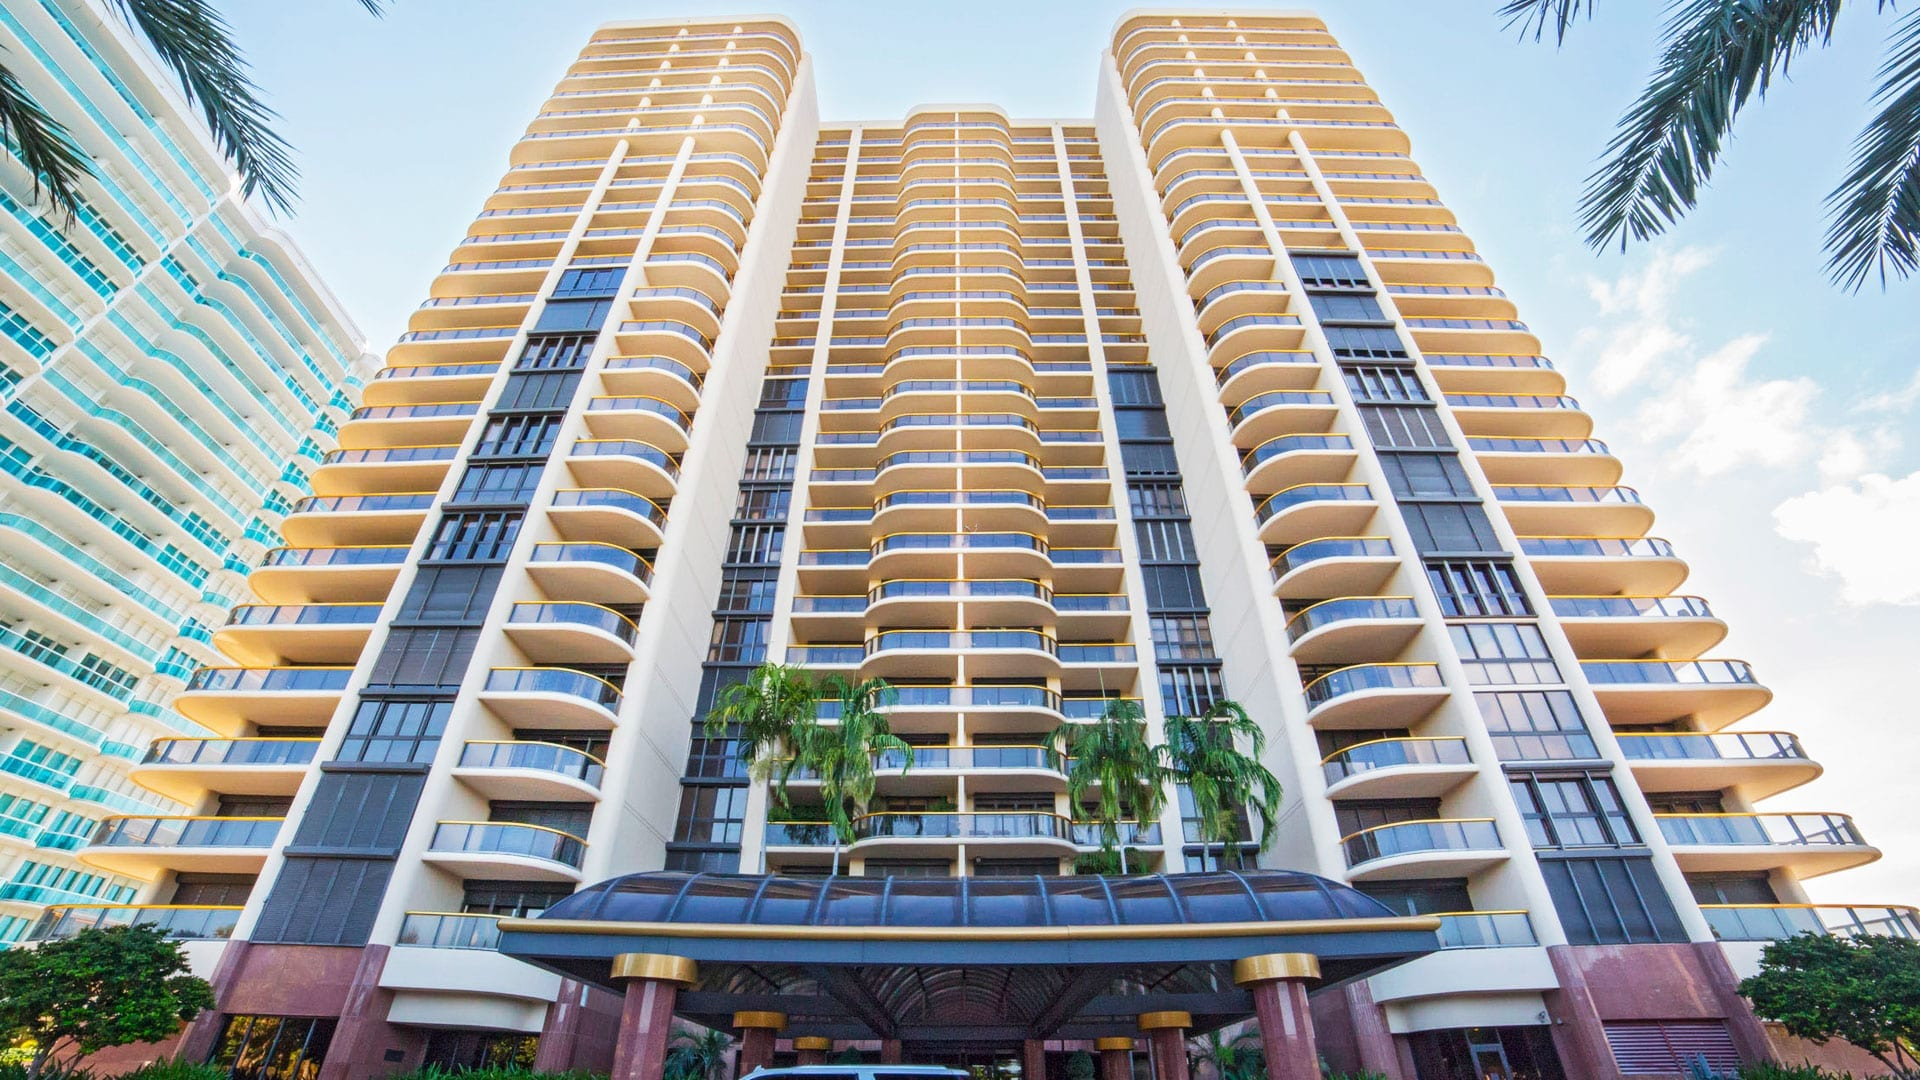 Bal Harbour Tower - The Gold Standard of Luxury High Rise Condo Design - Swedroe Architecture